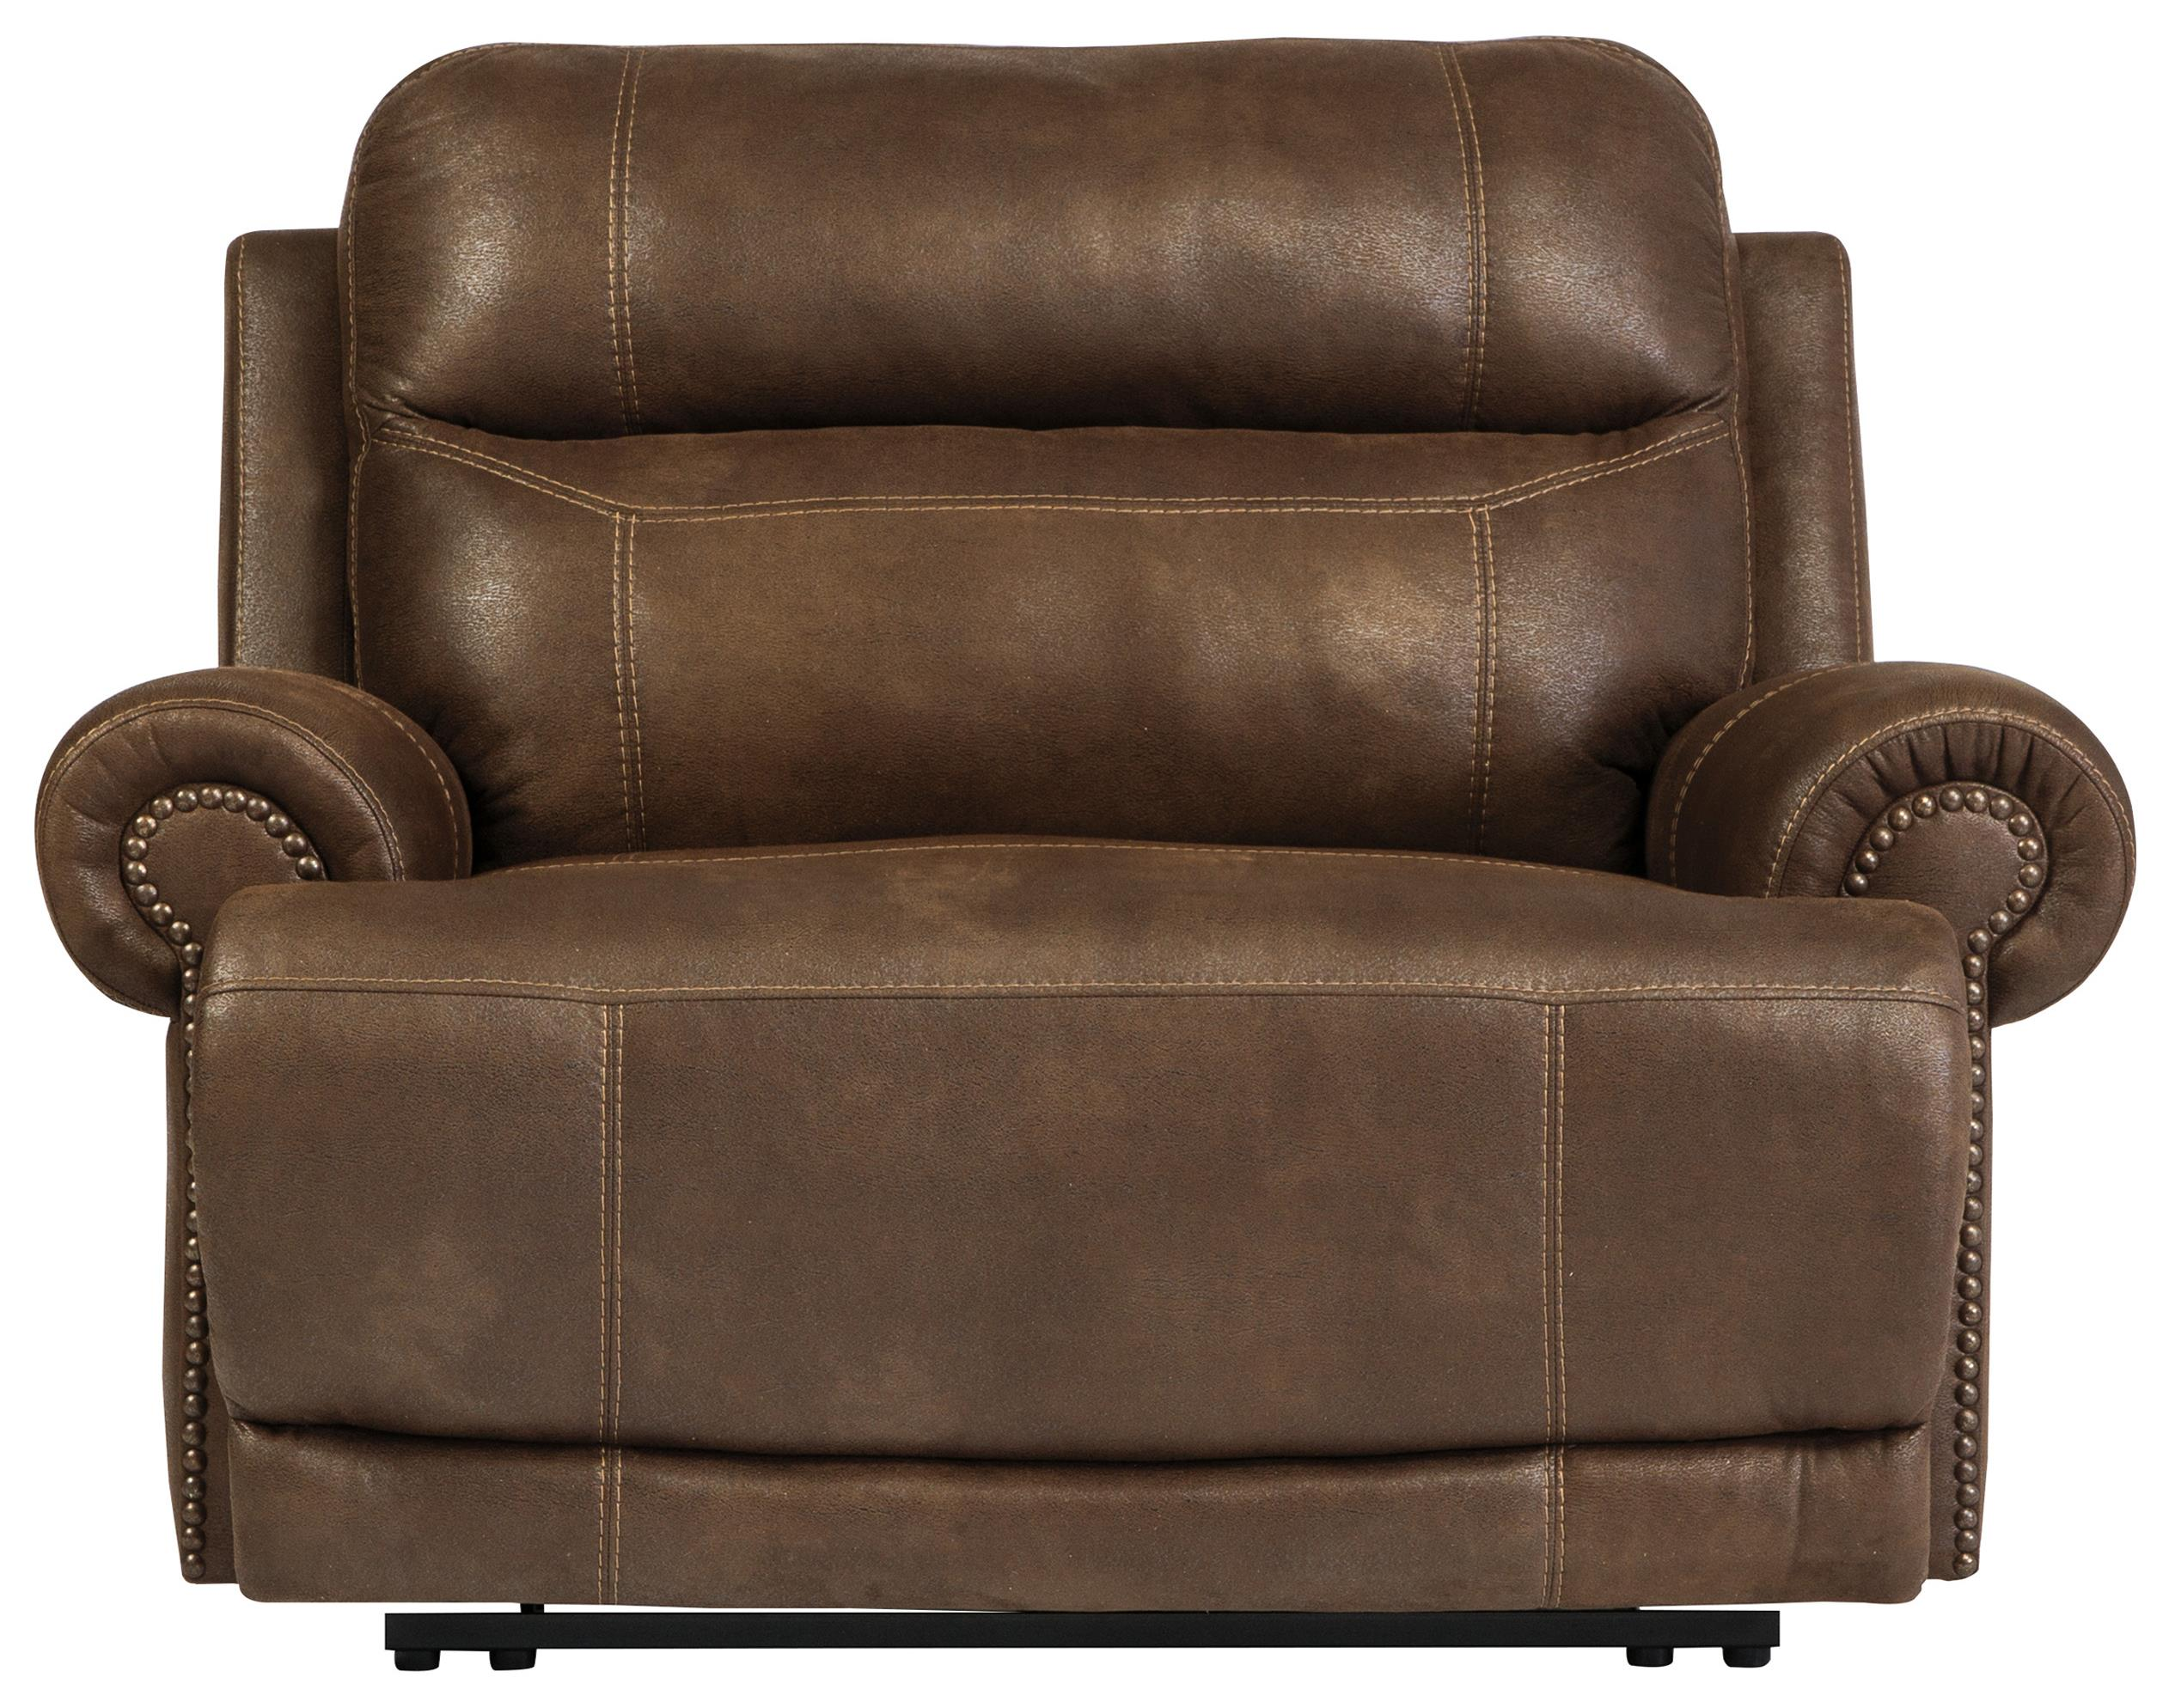 Austere - Brown Zero Wall Power Wide Recliner by Signature Design at Fisher Home Furnishings